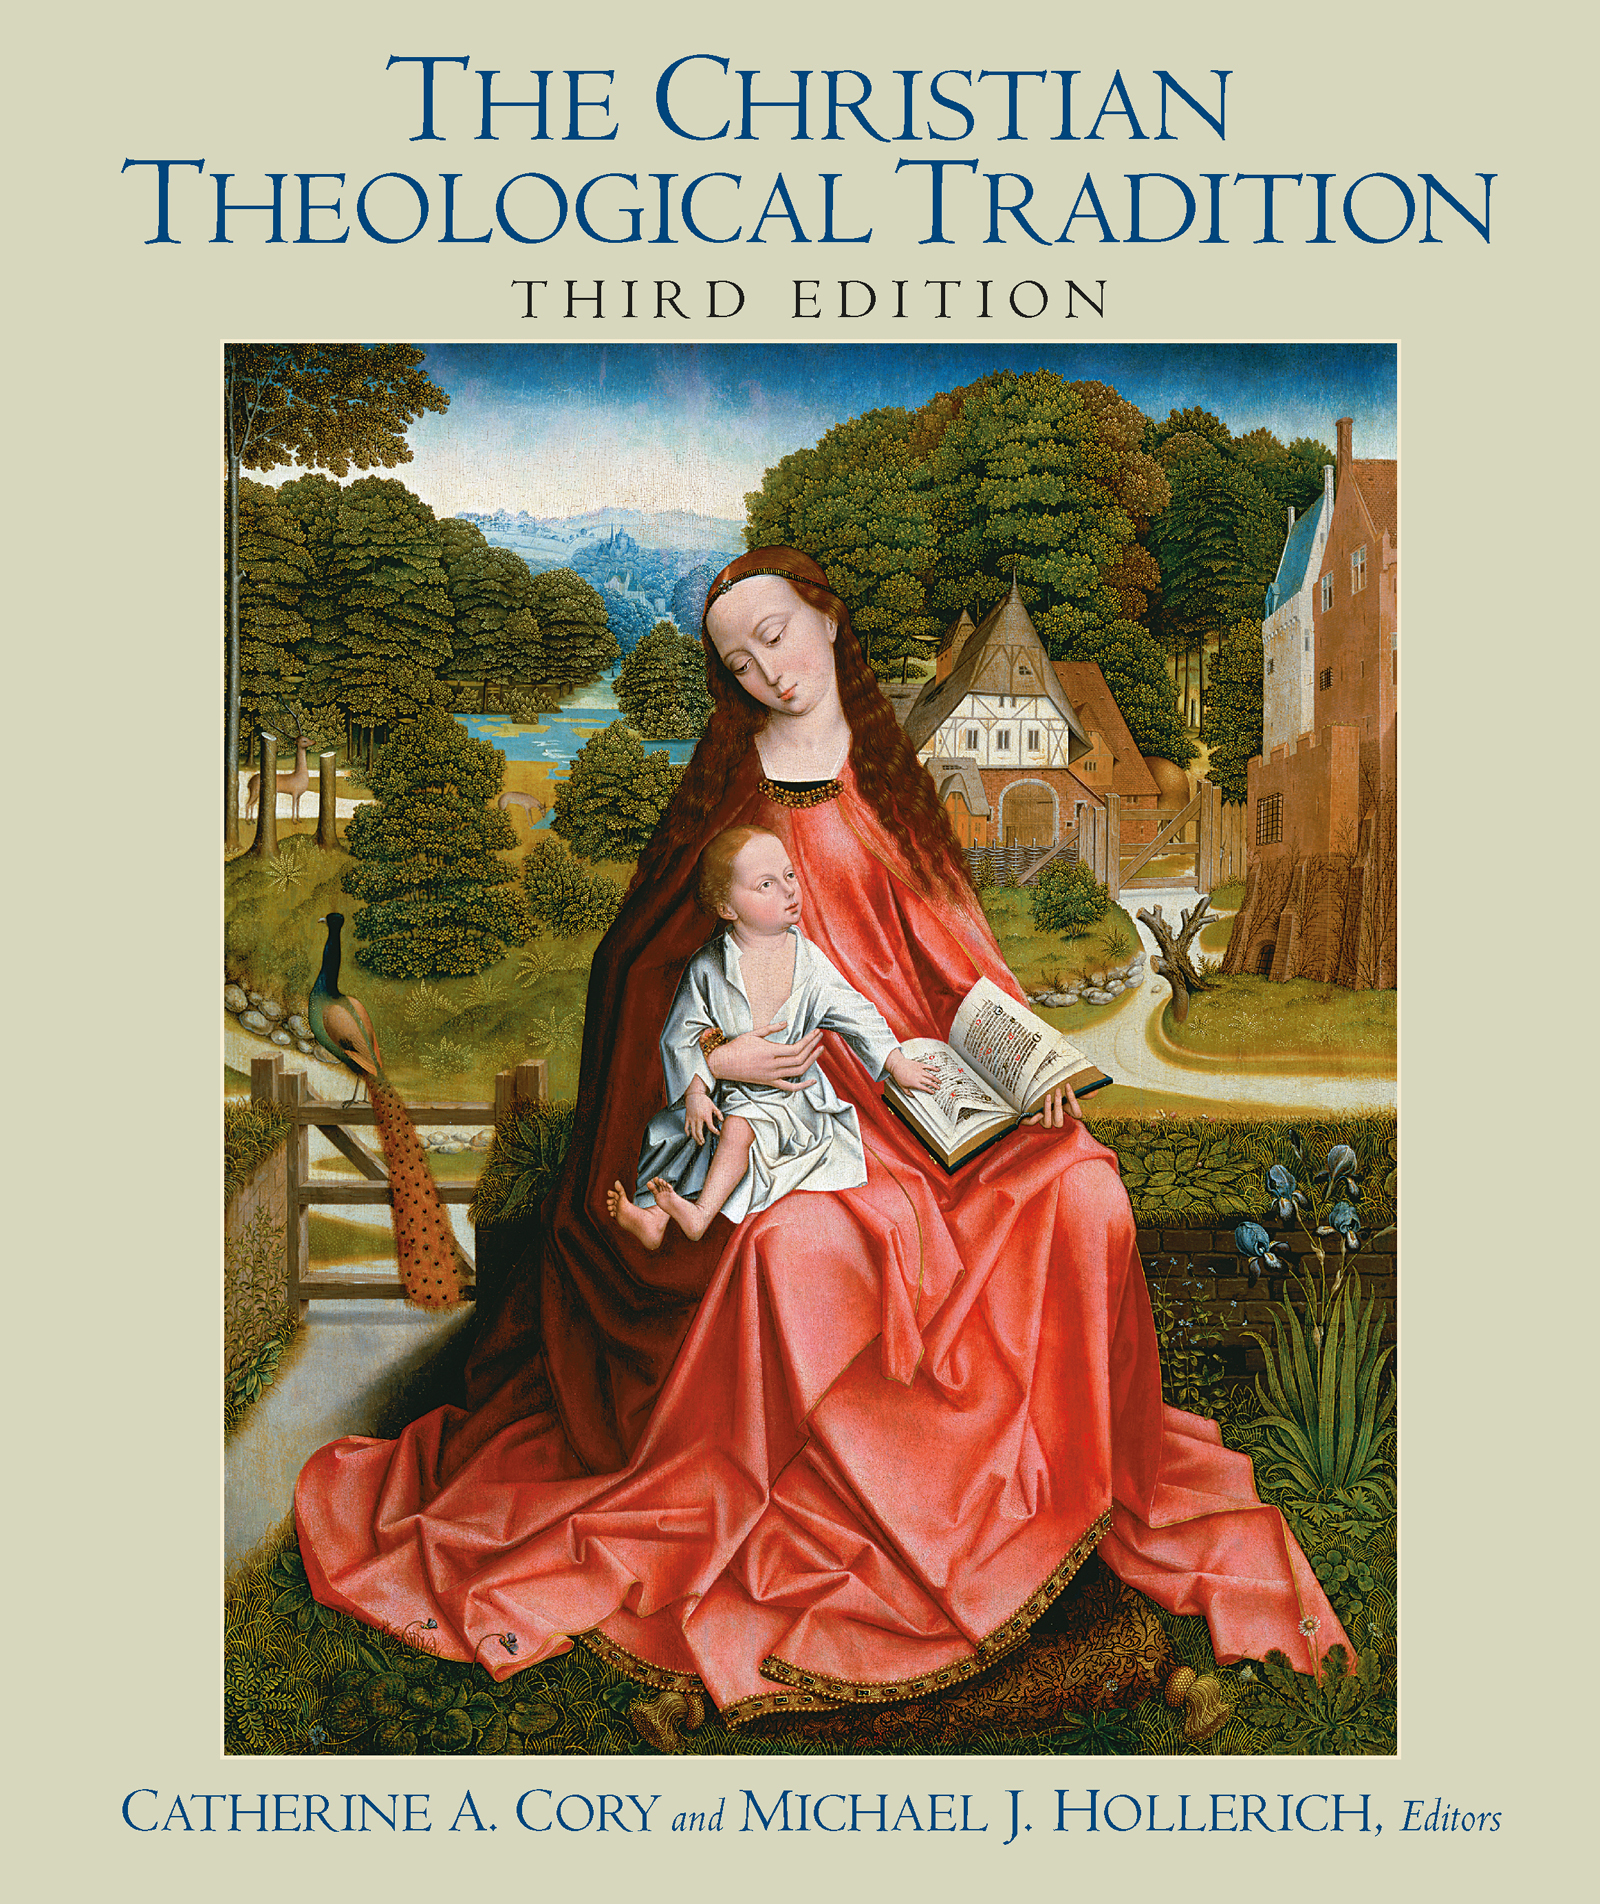 Christian Theological Tradition book cover